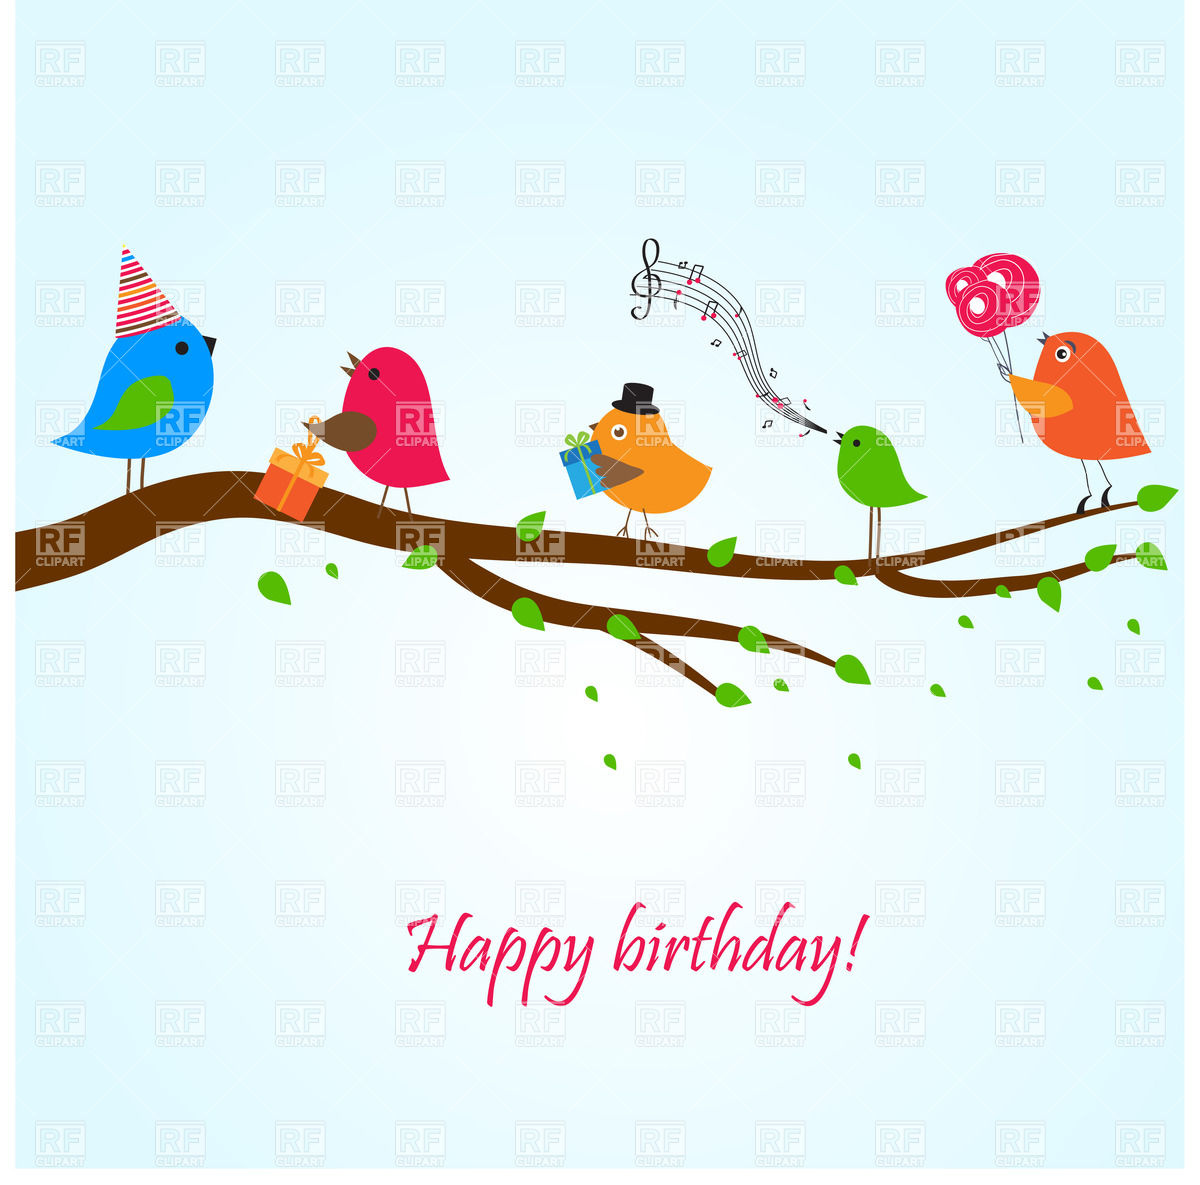 birthday wishes clip art ; birthday-greeting-card-with-birds-on-the-branch-singing-songs-Download-Royalty-free-Vector-File-EPS-45001